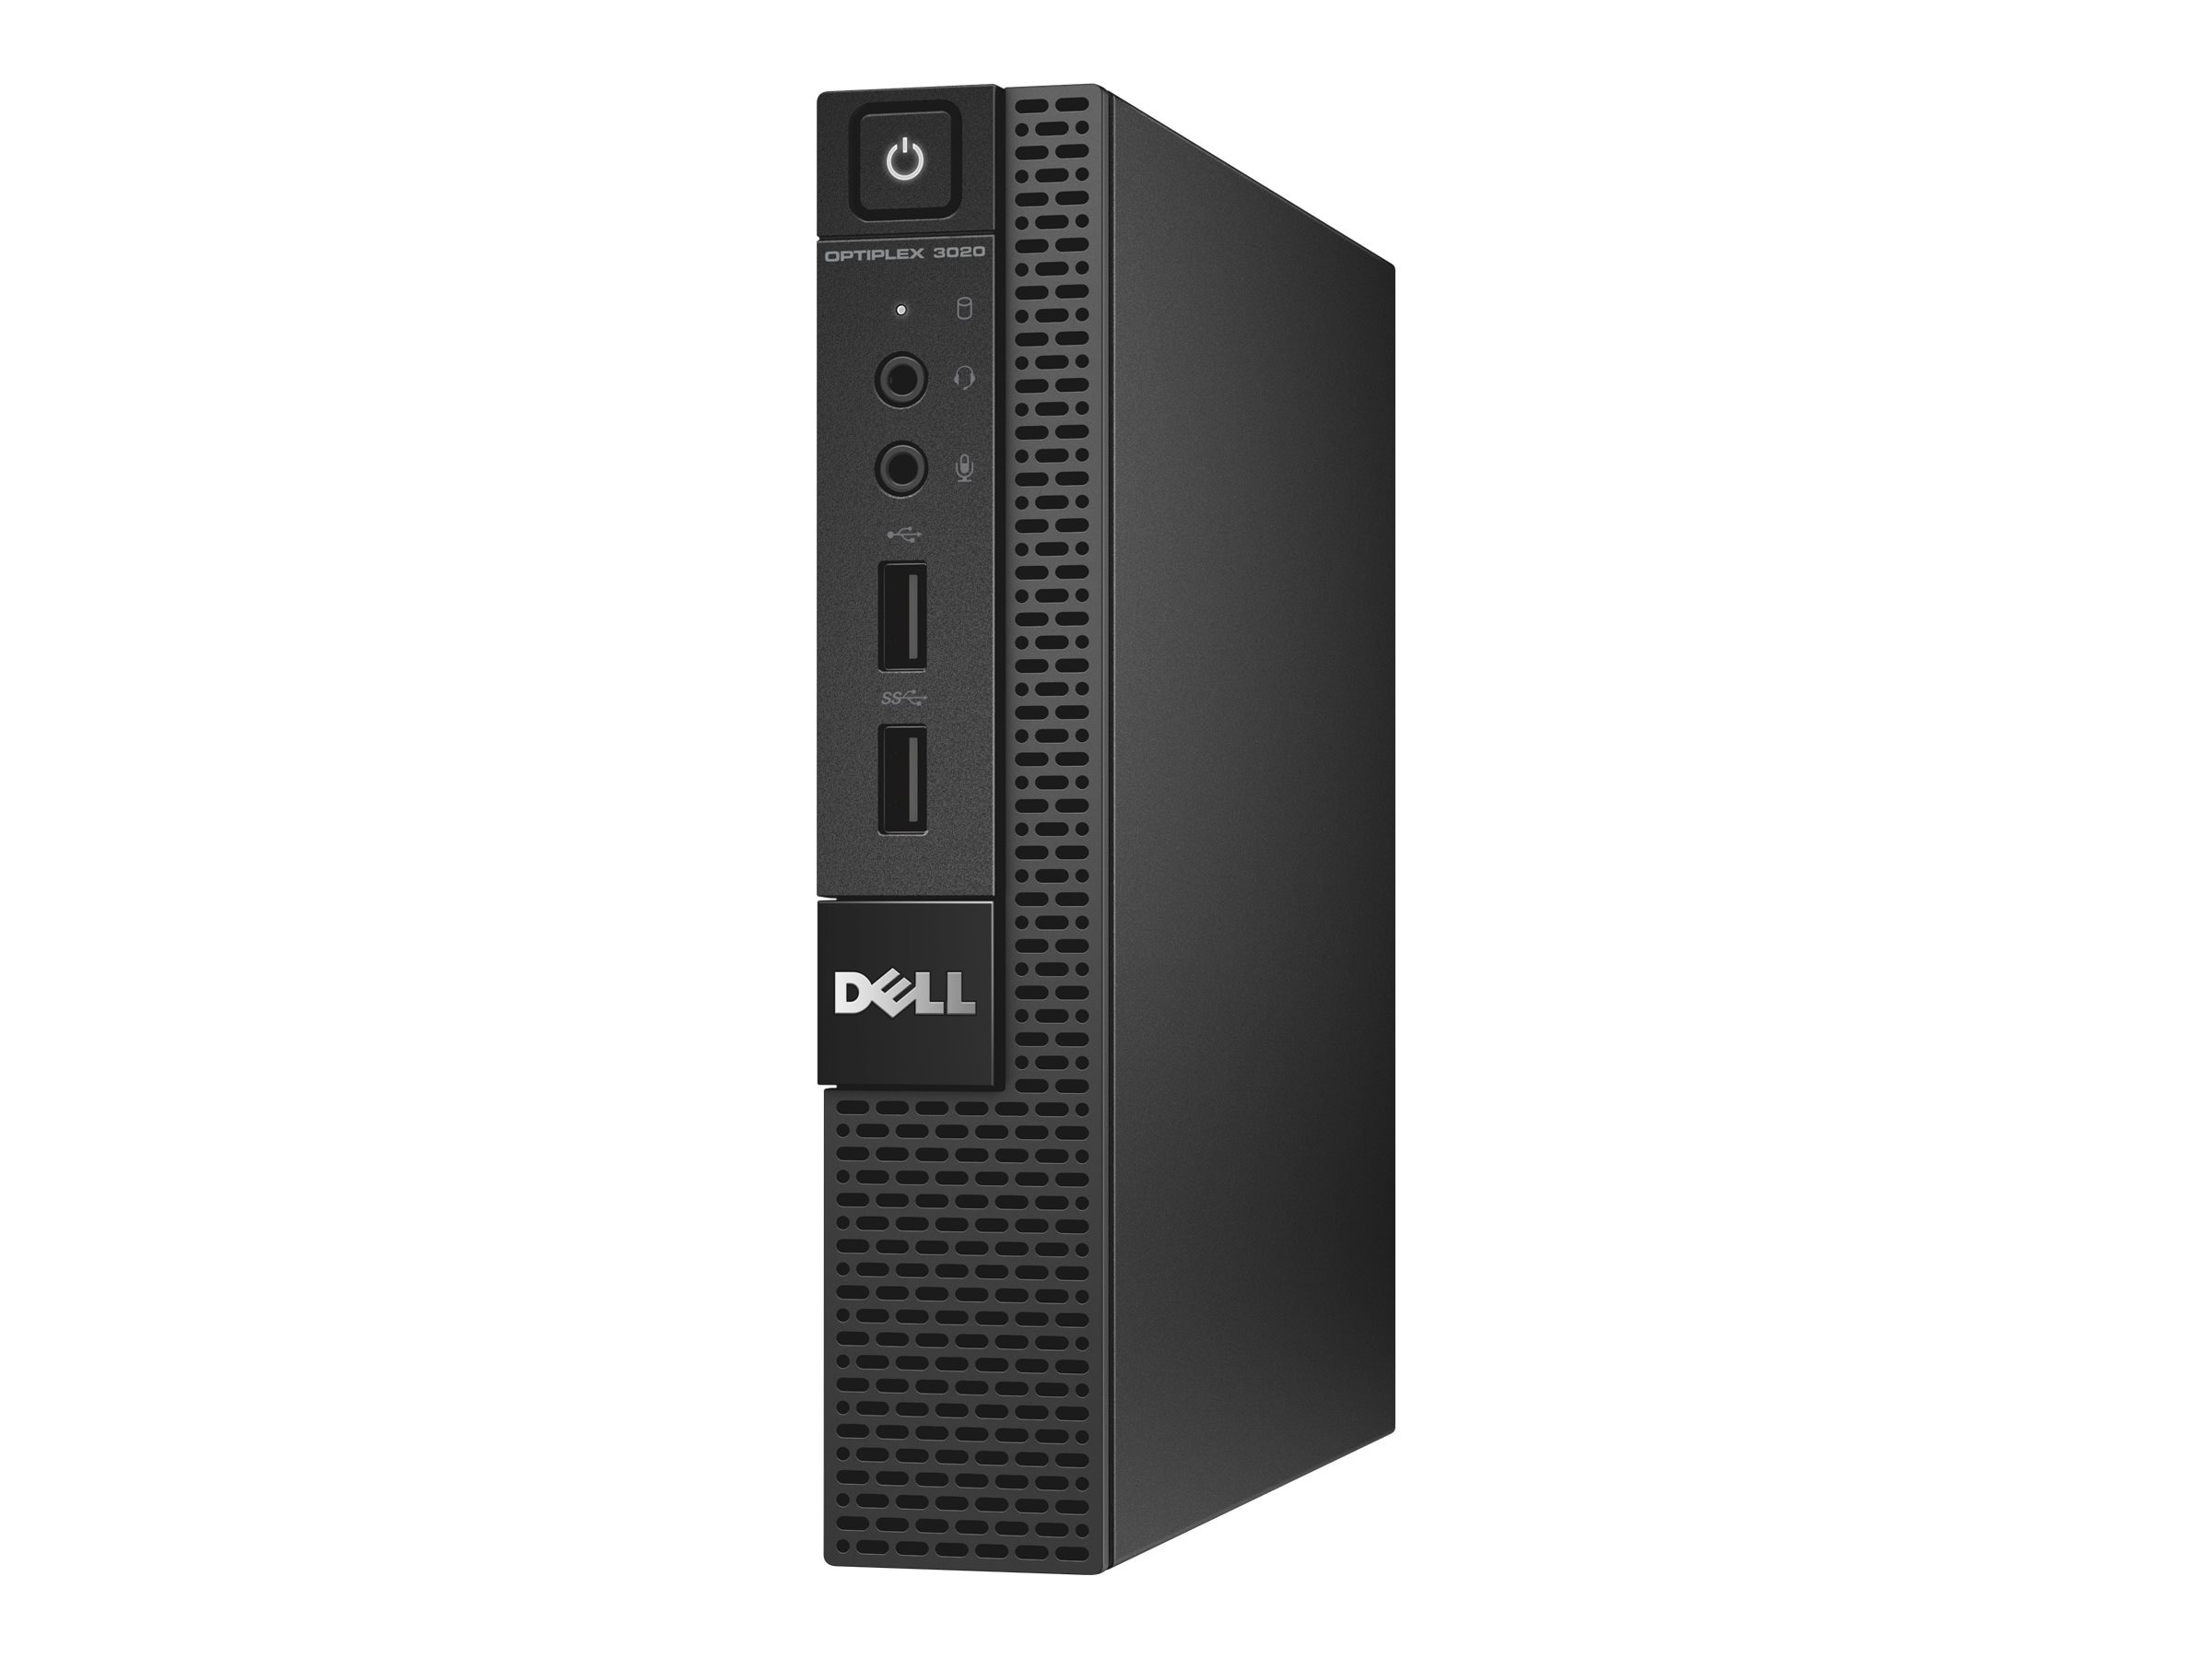 Dell Optiplex 3020 2.8GHz Pentium 4GB RAM 500GB hard drive, 0GCXC, 18985101, Desktops